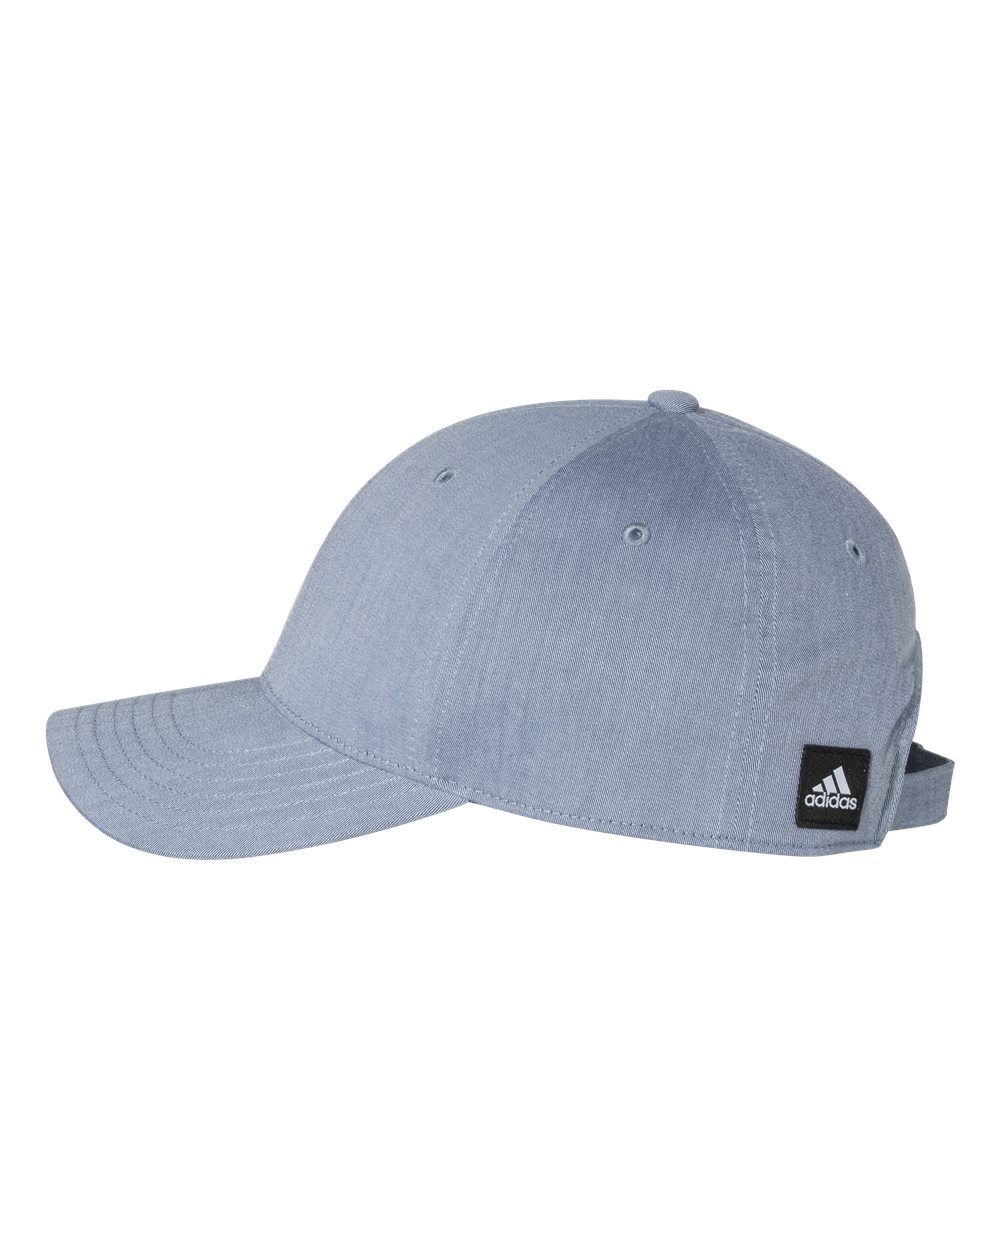 Adidas A629 - Chambray Cap  16.24 - Headwear be688584776